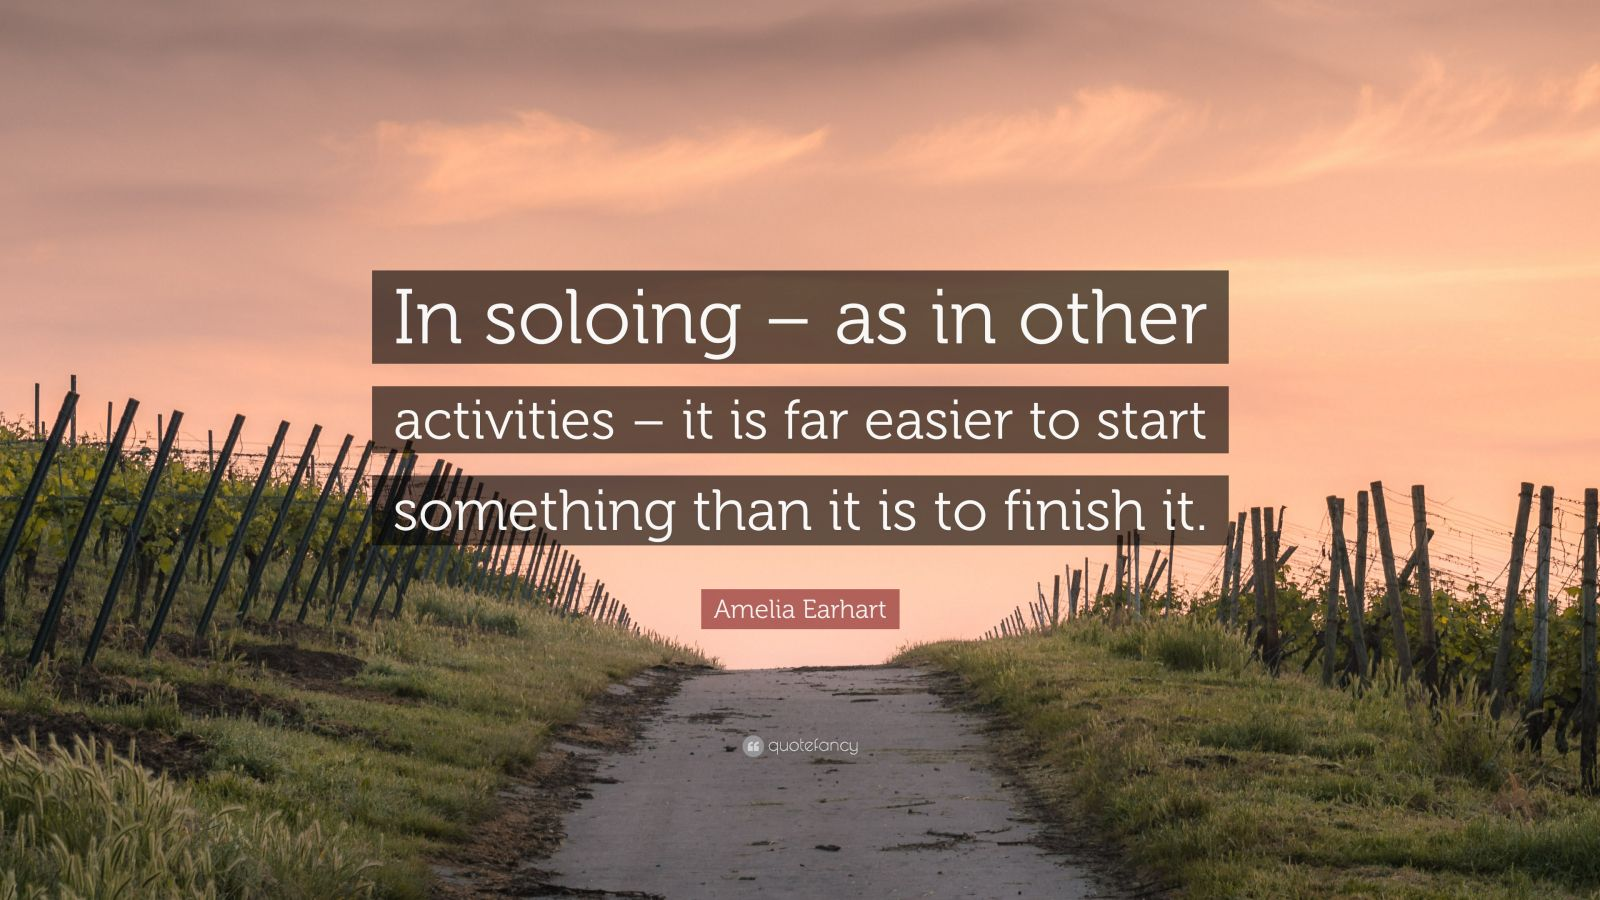 """Amelia Earhart Quote: """"In soloing – as in other activities – it is far easier to start something than it is to finish it."""""""